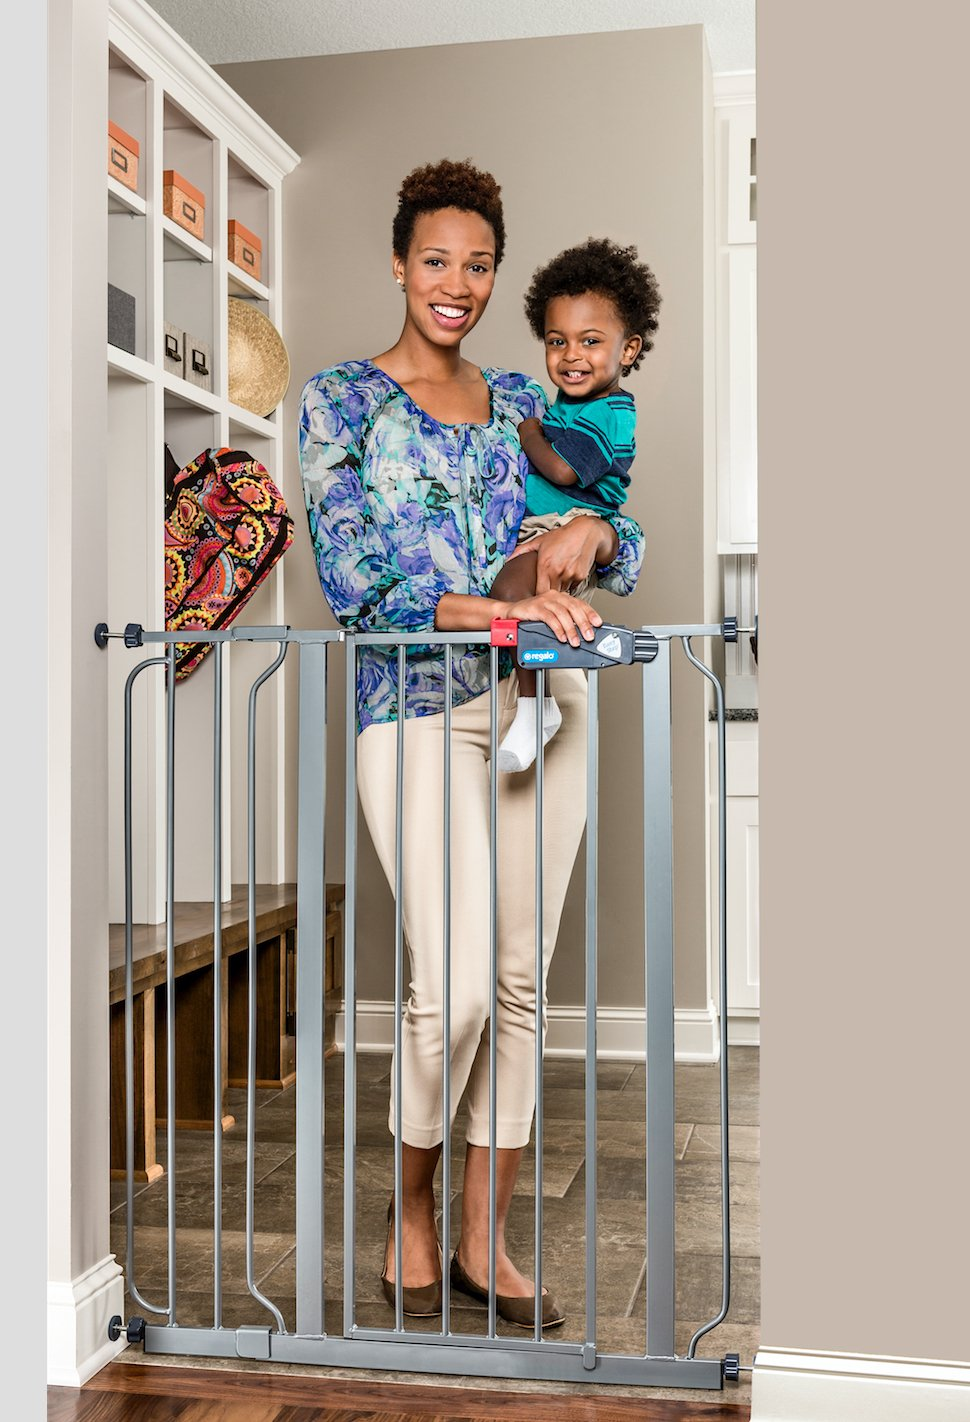 Regalo Easy Step Extra Tall Walk Thru Baby Gate, Bonus Kit, Includes 4-Inch Extension Kit, 4 Pack of Pressure Mount Kit and 4 Pack of Wall Mount Kit, Platinum by Regalo